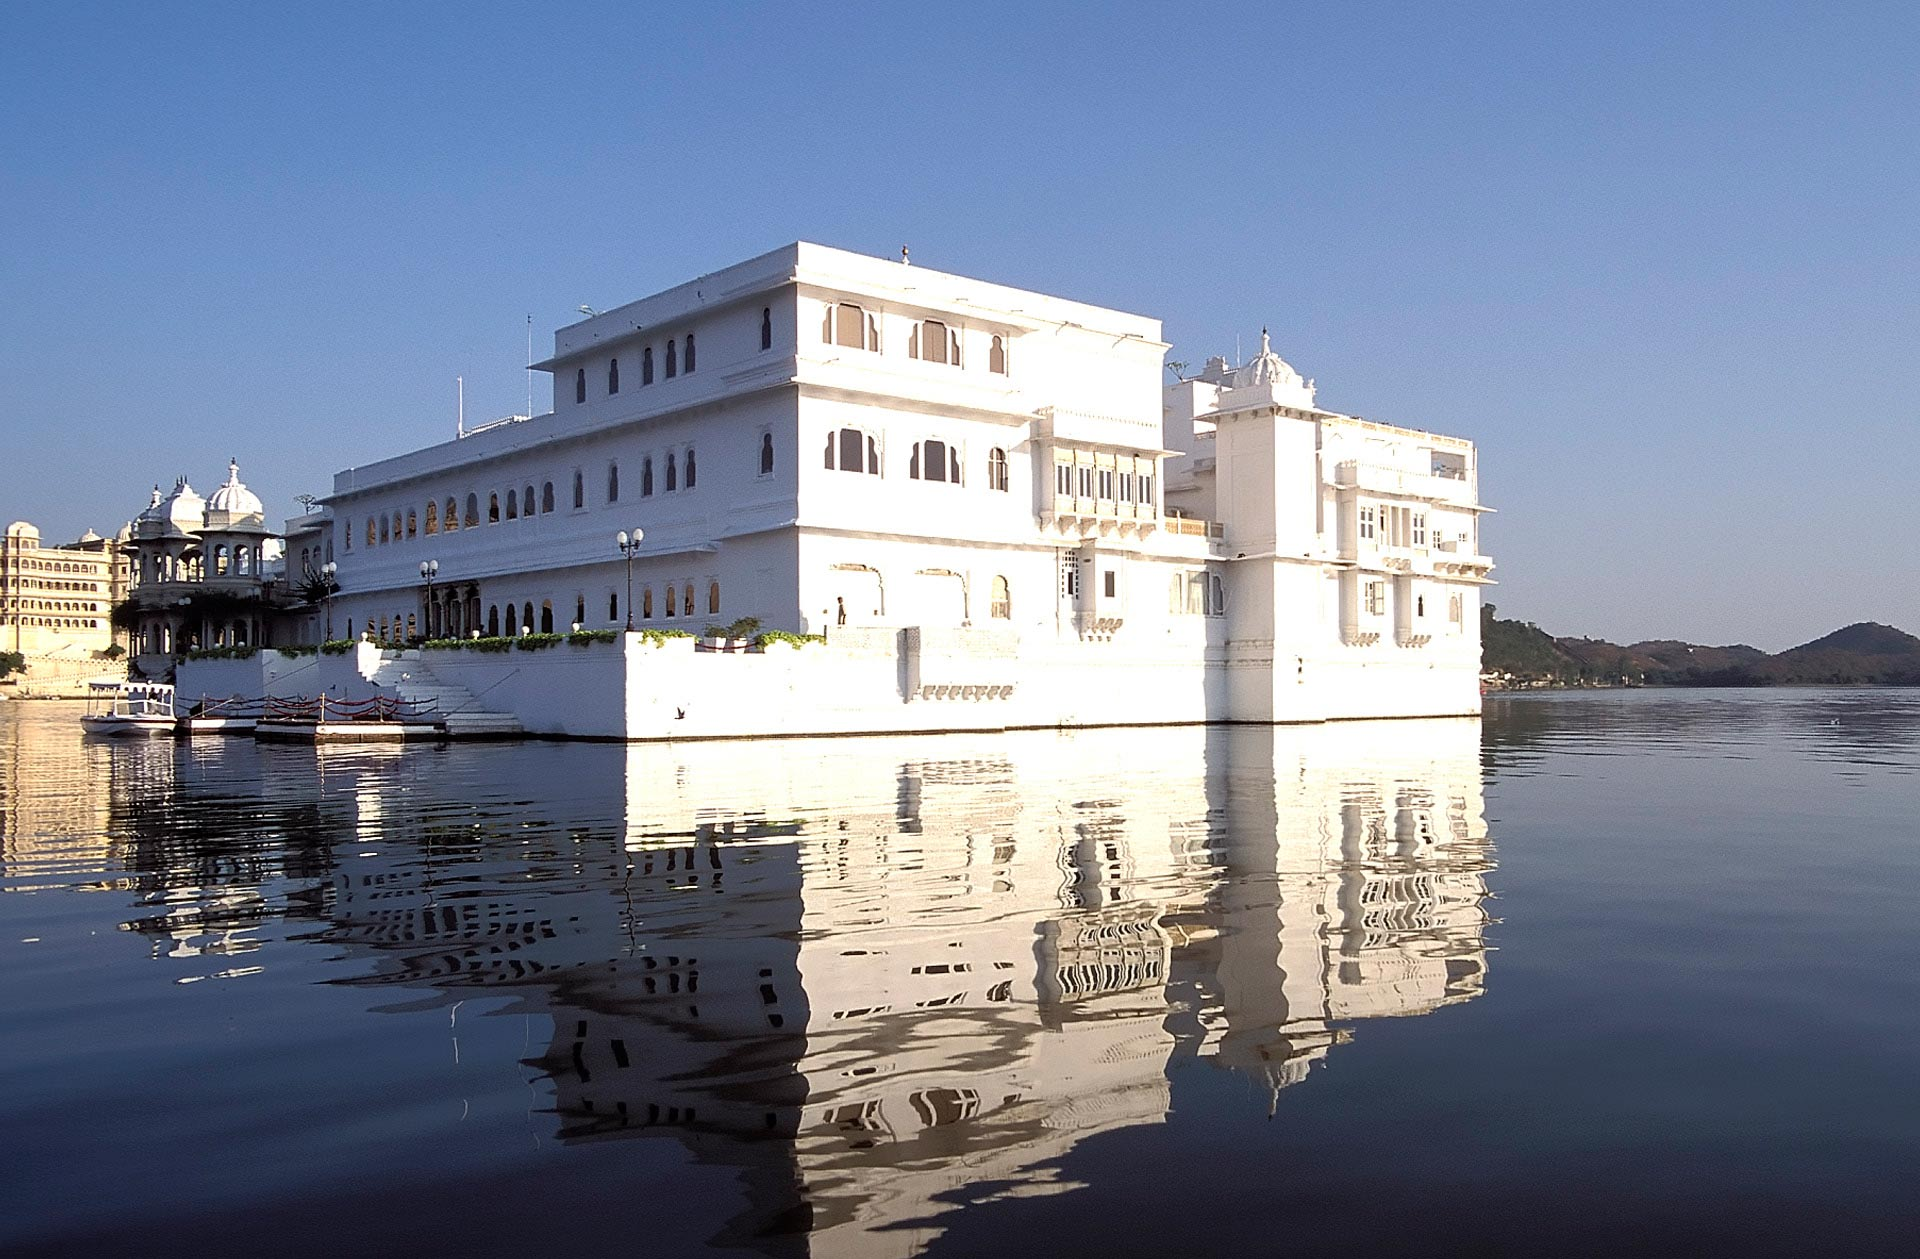 Lake Palace Hotel on Pichola Lake, Udaipur, Rajasthan, India